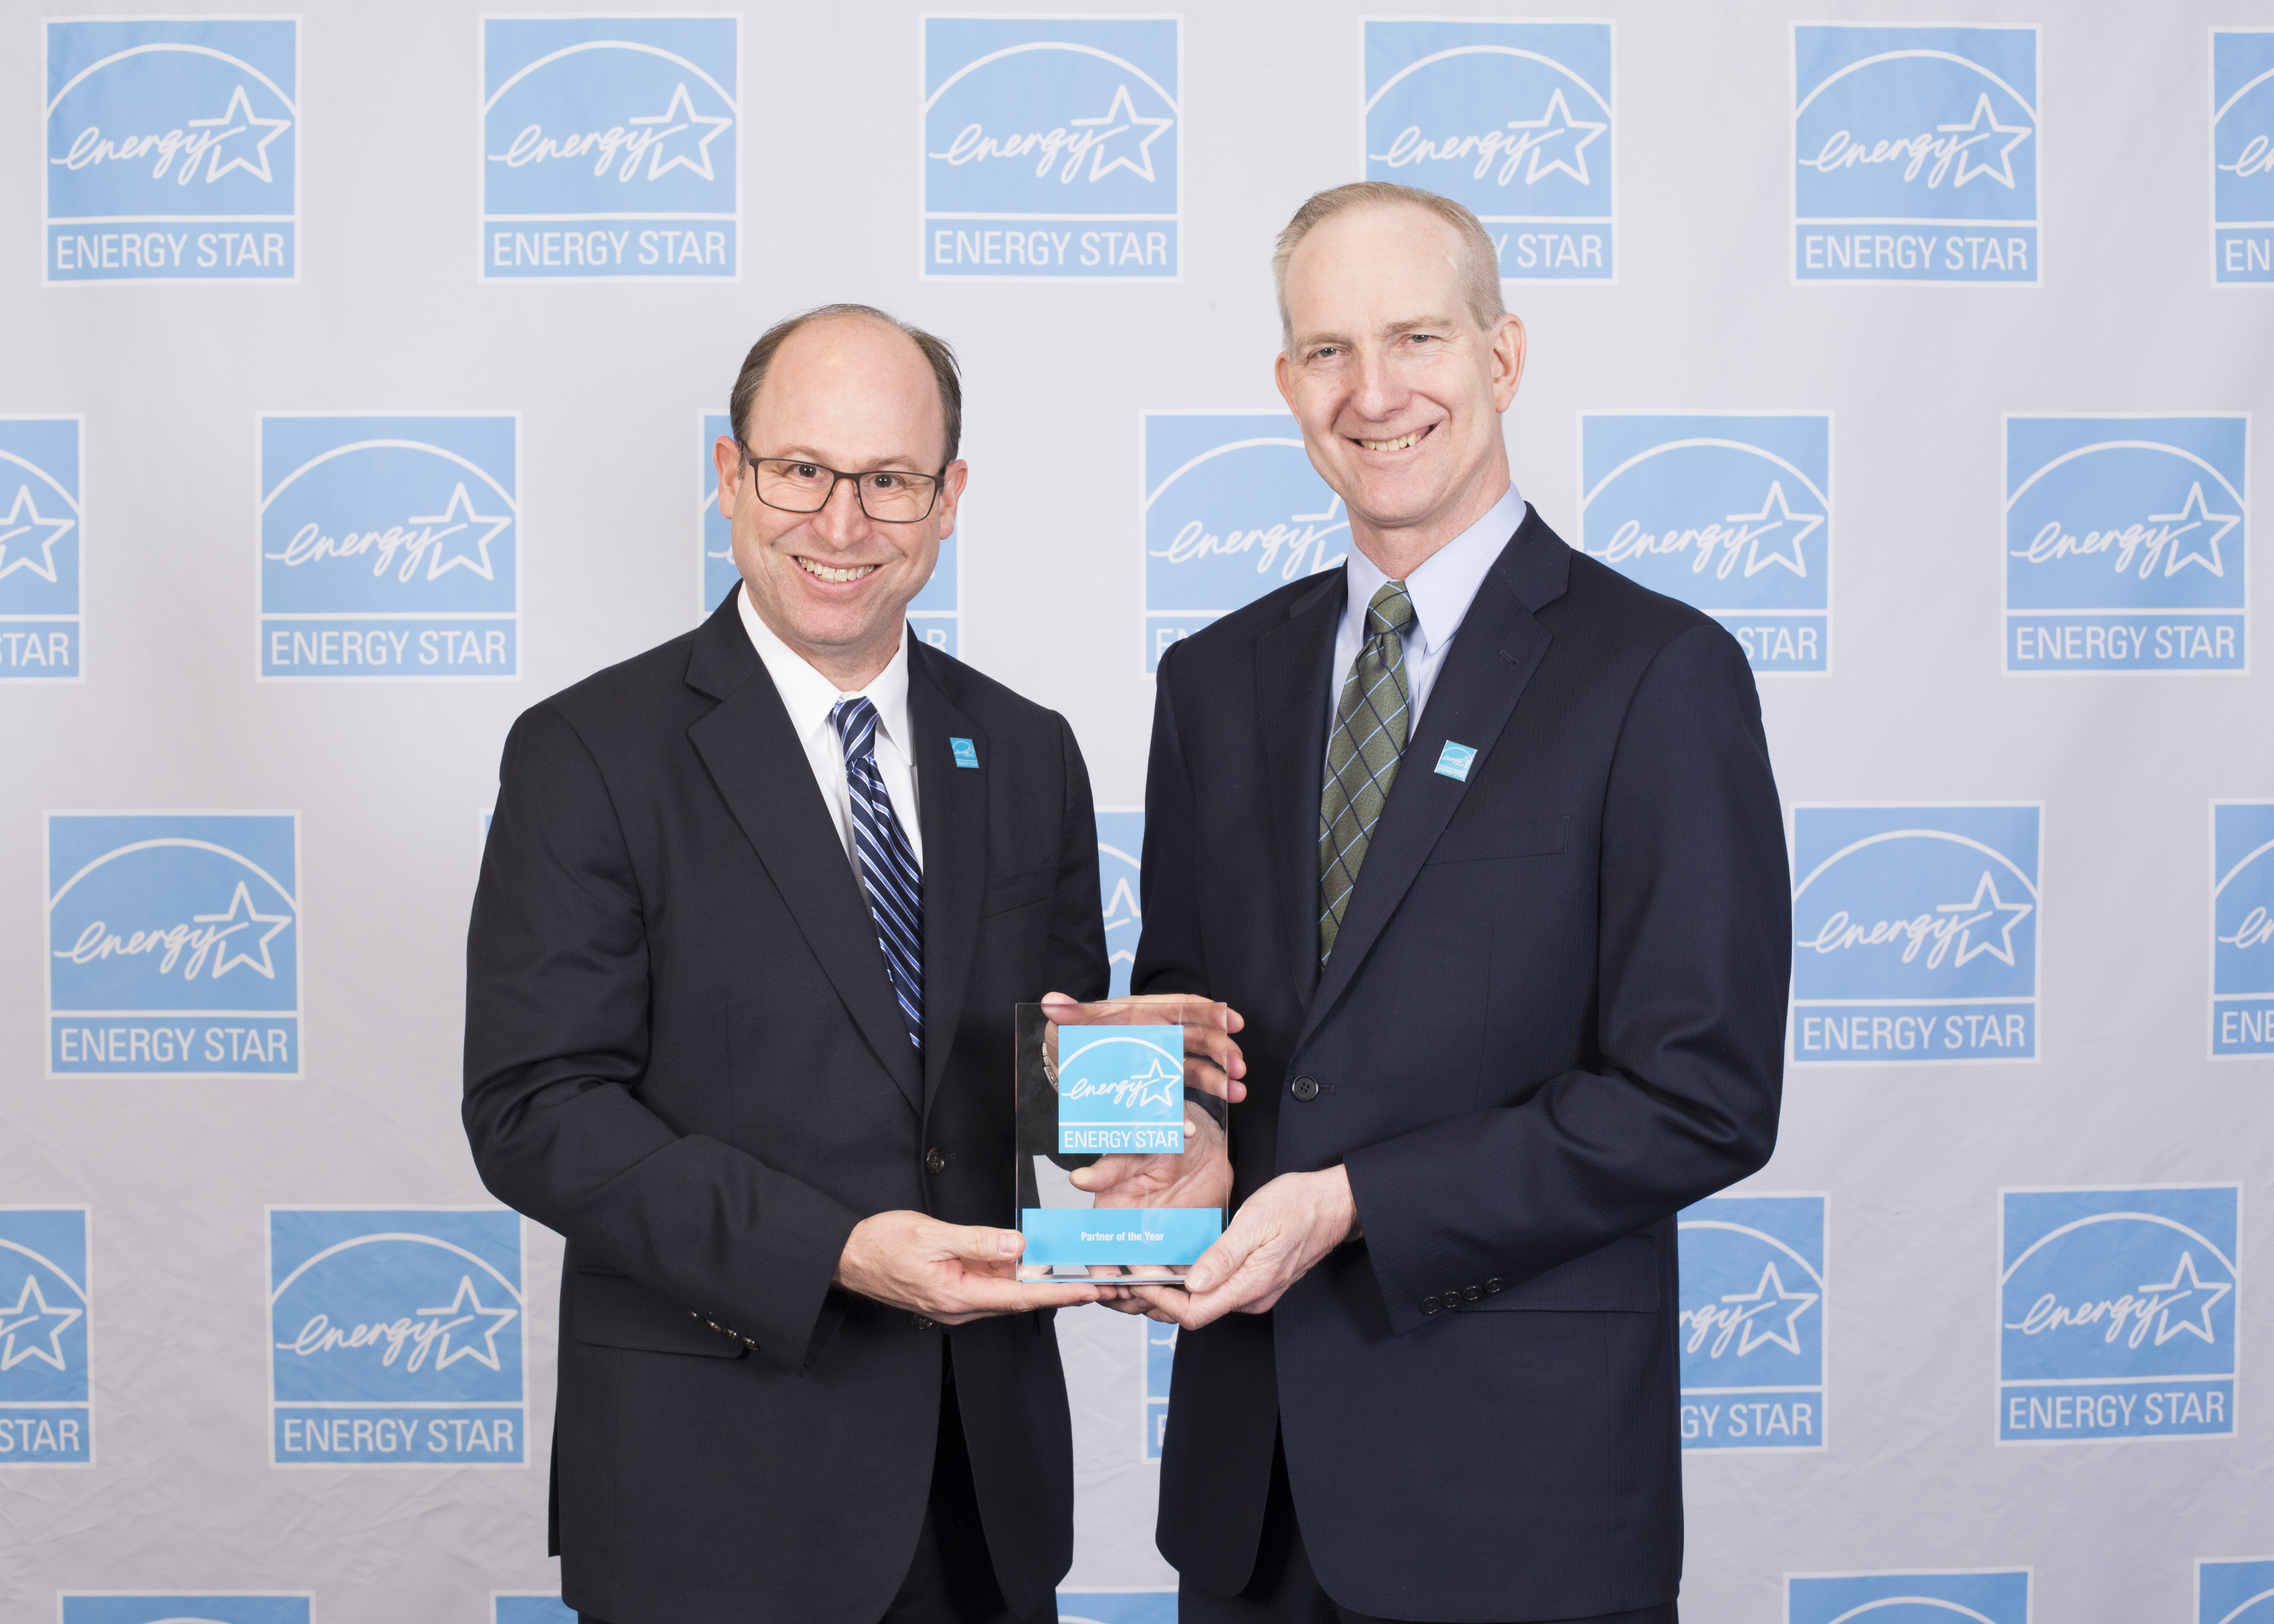 PSEG Long Island received the ENERGY STAR Partner of the Year award.